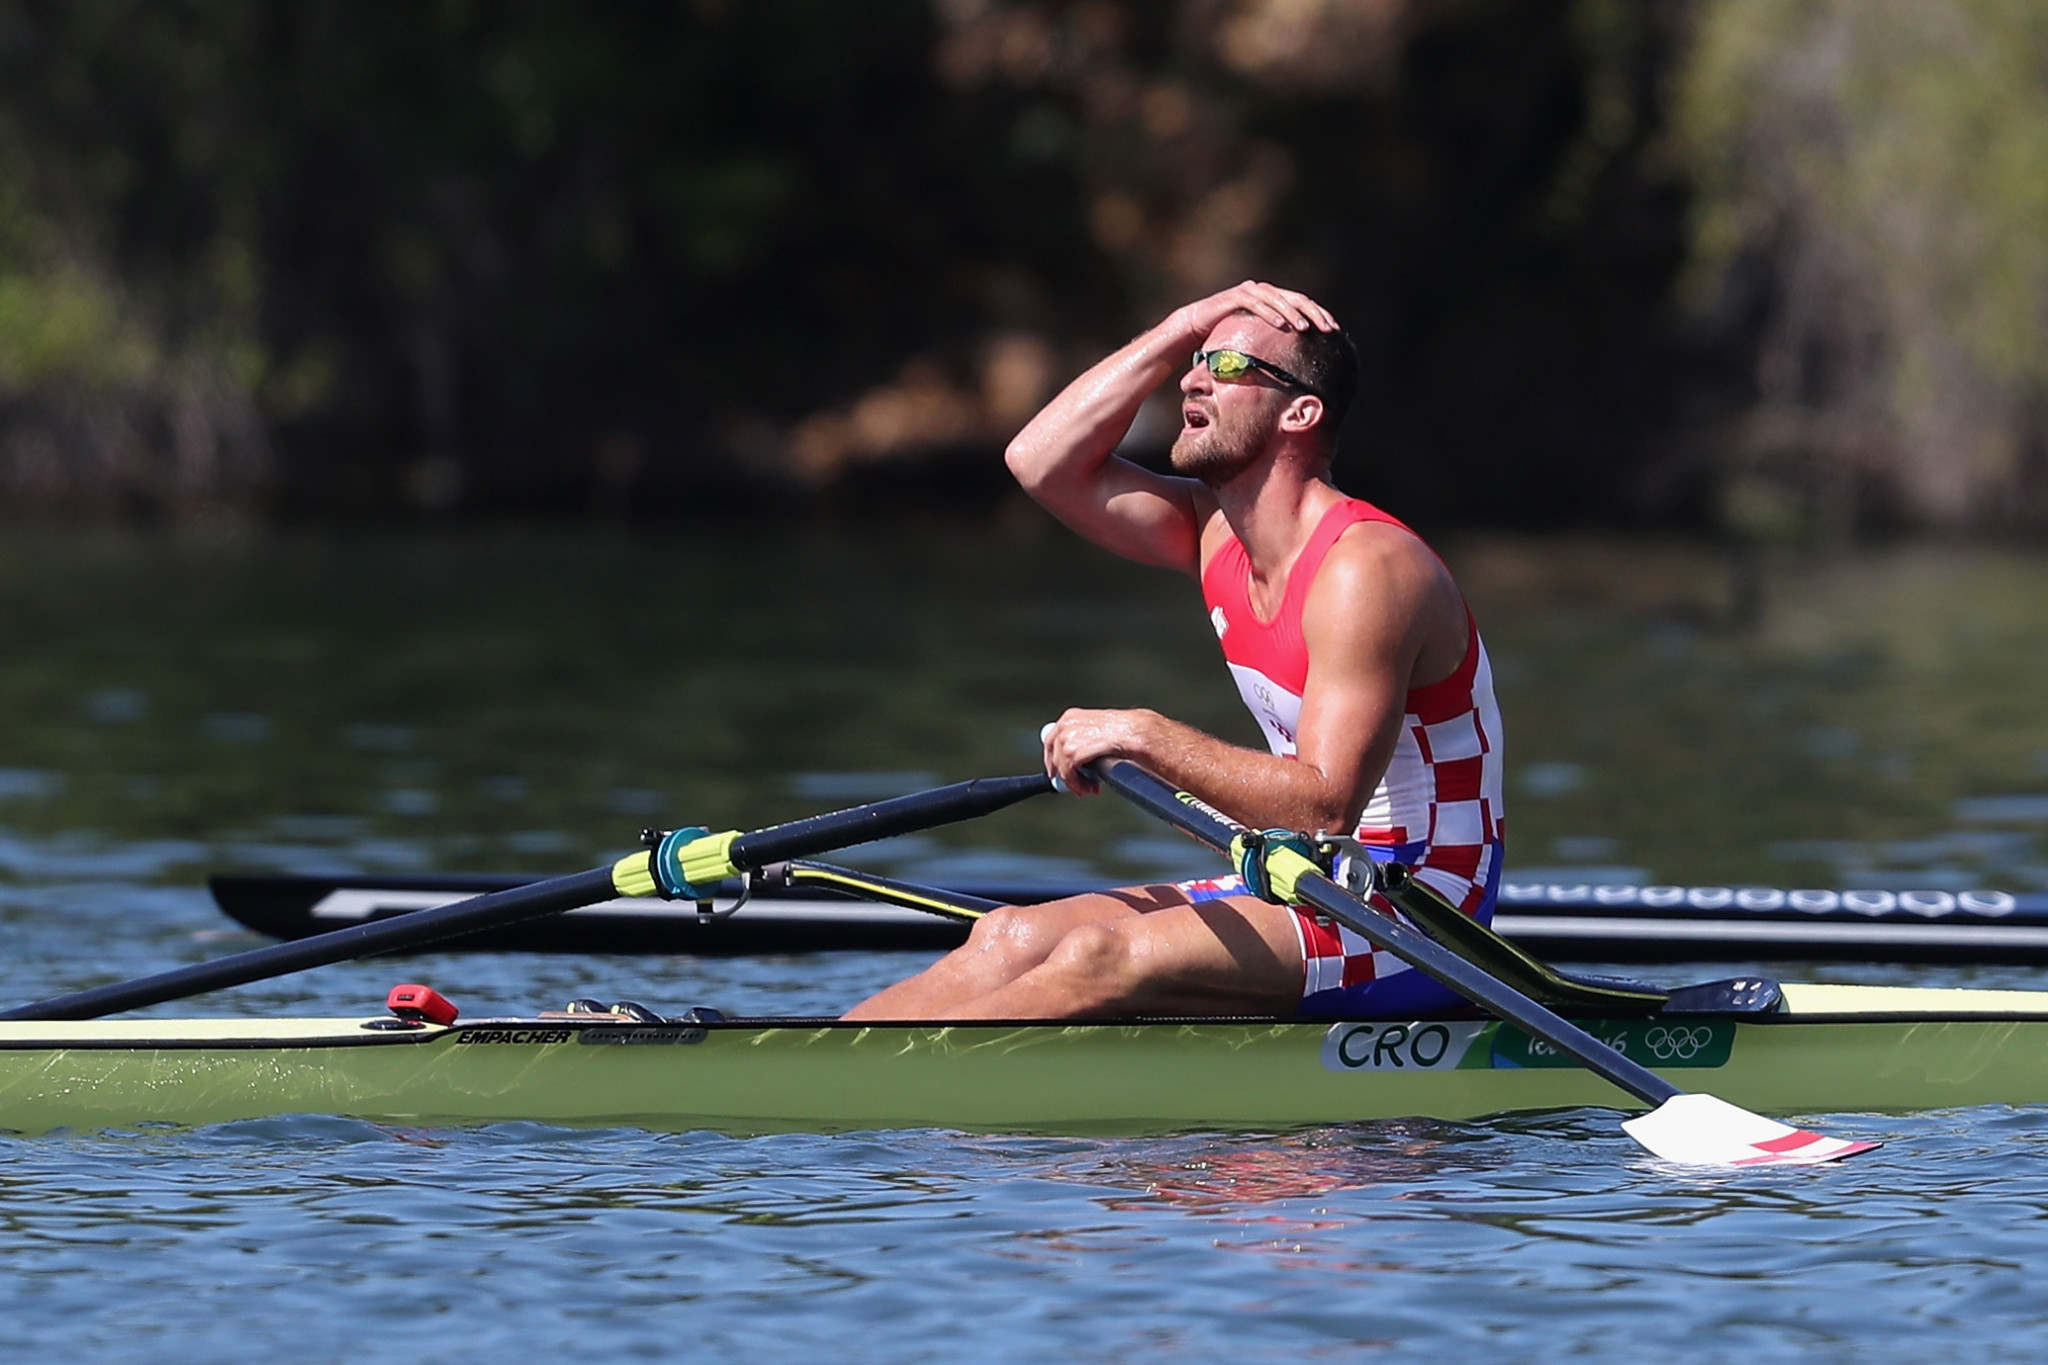 Olympic medallists and defending champions set to feature in European Championships rowing competition